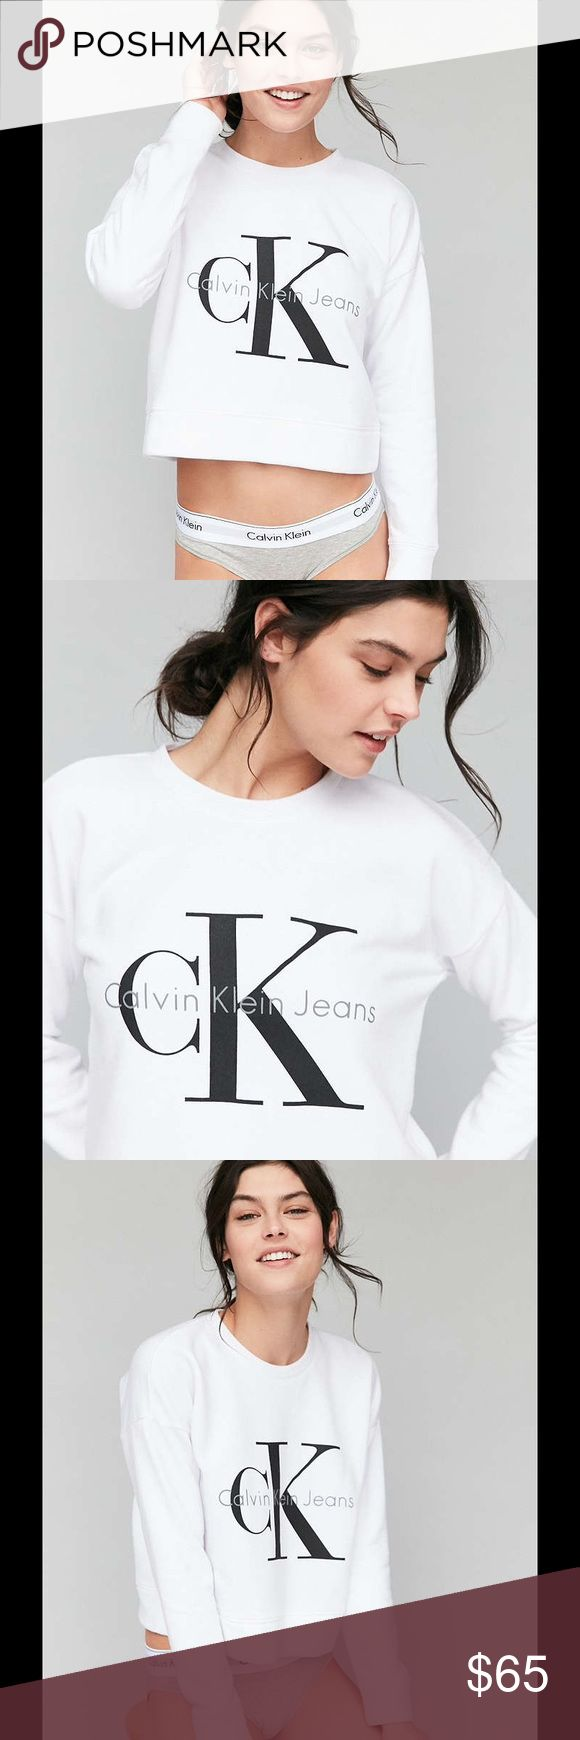 """Urban Outfitters Calvin Klein Cropped Sweatshirt NOT FOR SALE!! Do not buy this listing.  Download the Dote Shopping app and get this sweatshirt for $65 plus free shipping using the promo code """"PDIN."""" Urban Outfitters Tops Sweatshirts & Hoodies"""